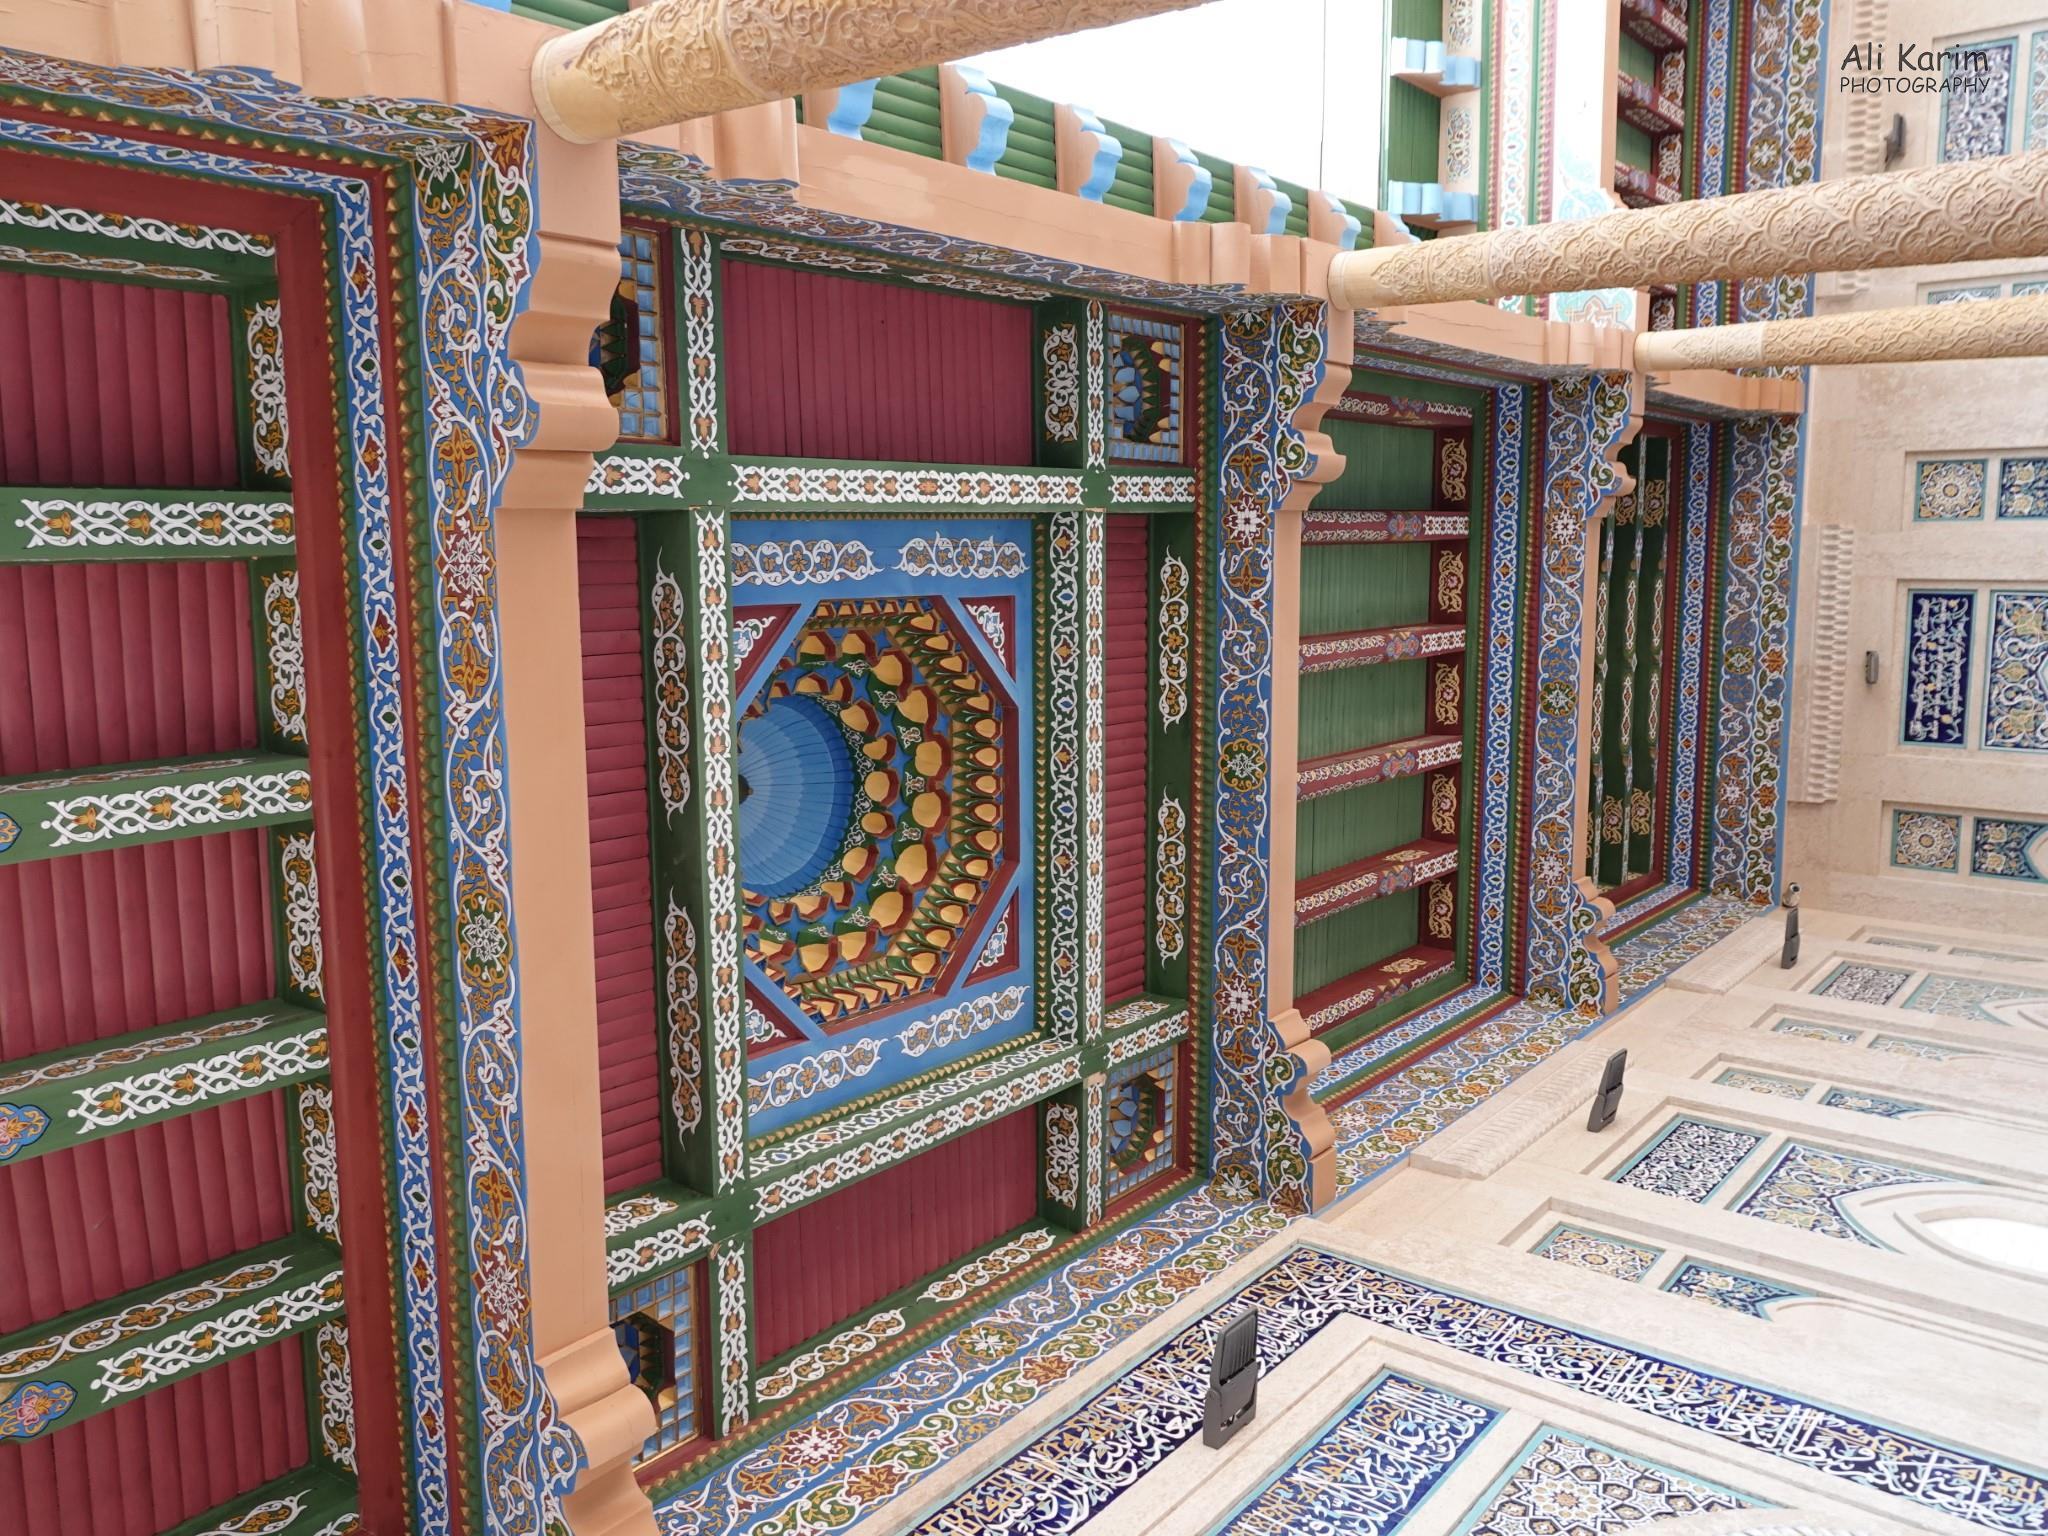 More Samarkand, Intricate wall and ceiling work in area around the Islom Karimov mausoleum